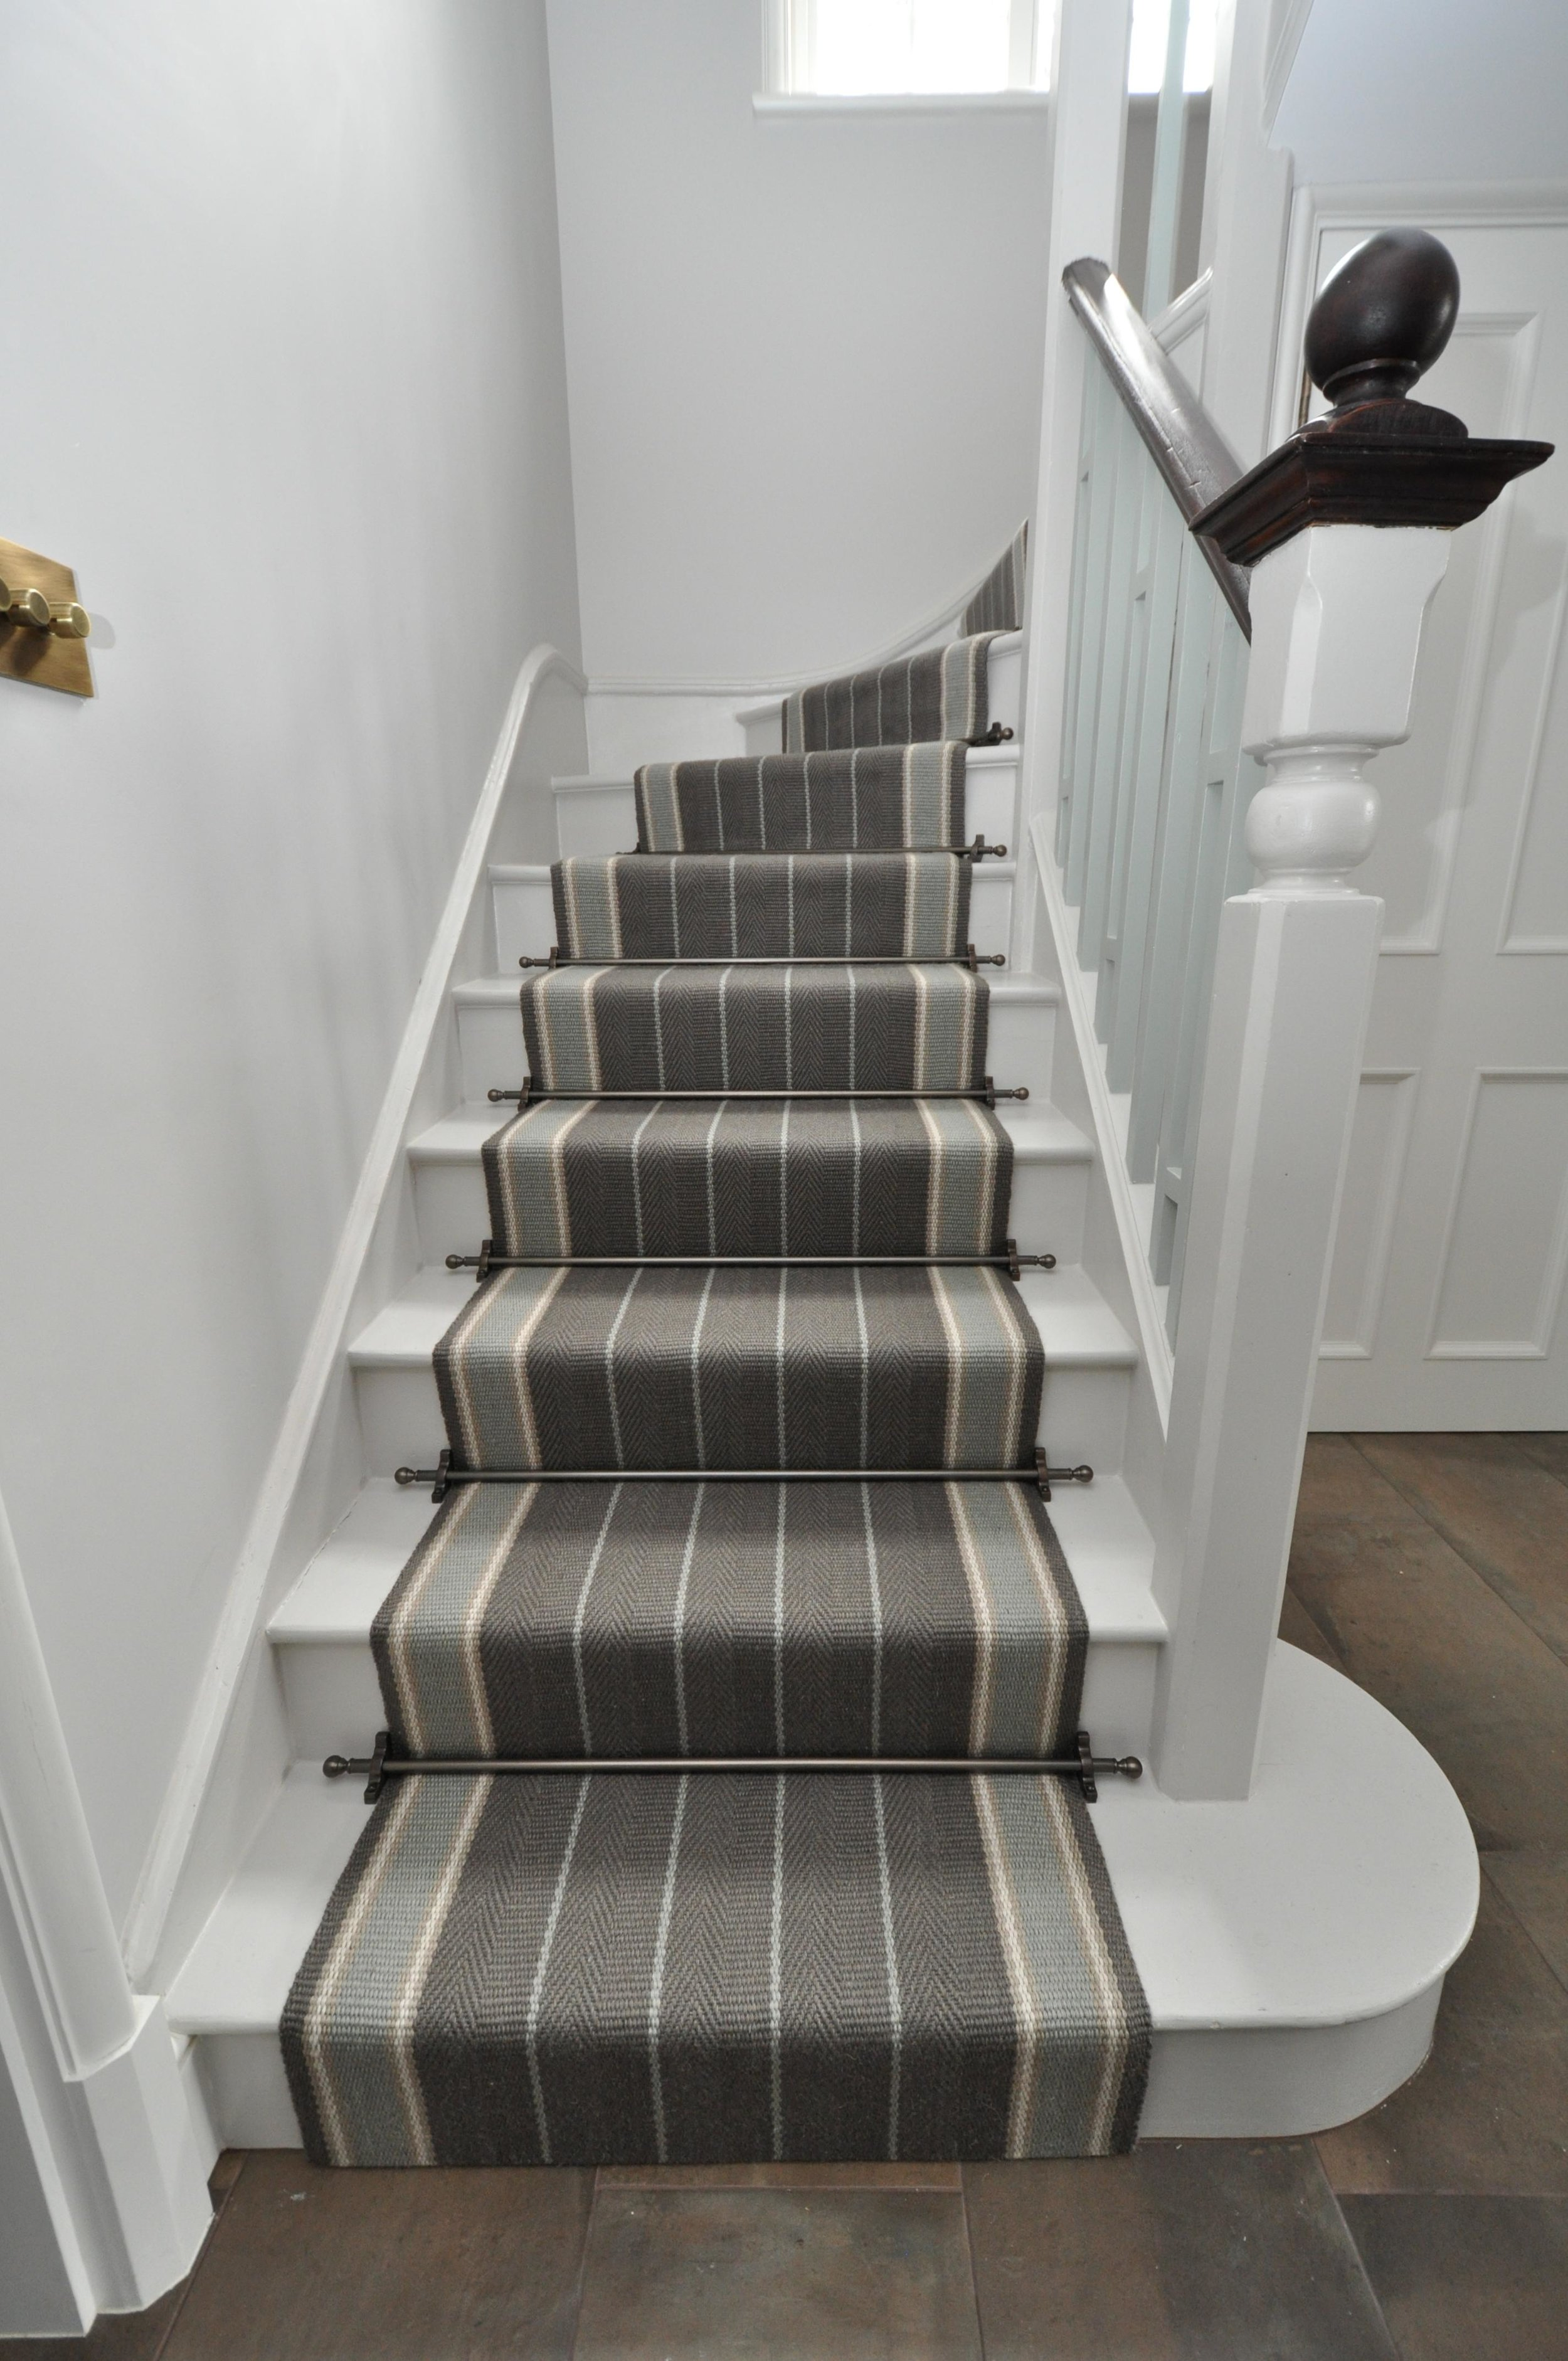 flatweave-stair-runner-london-bowloom-carpet-off-the-loom-DSC_1505.jpg